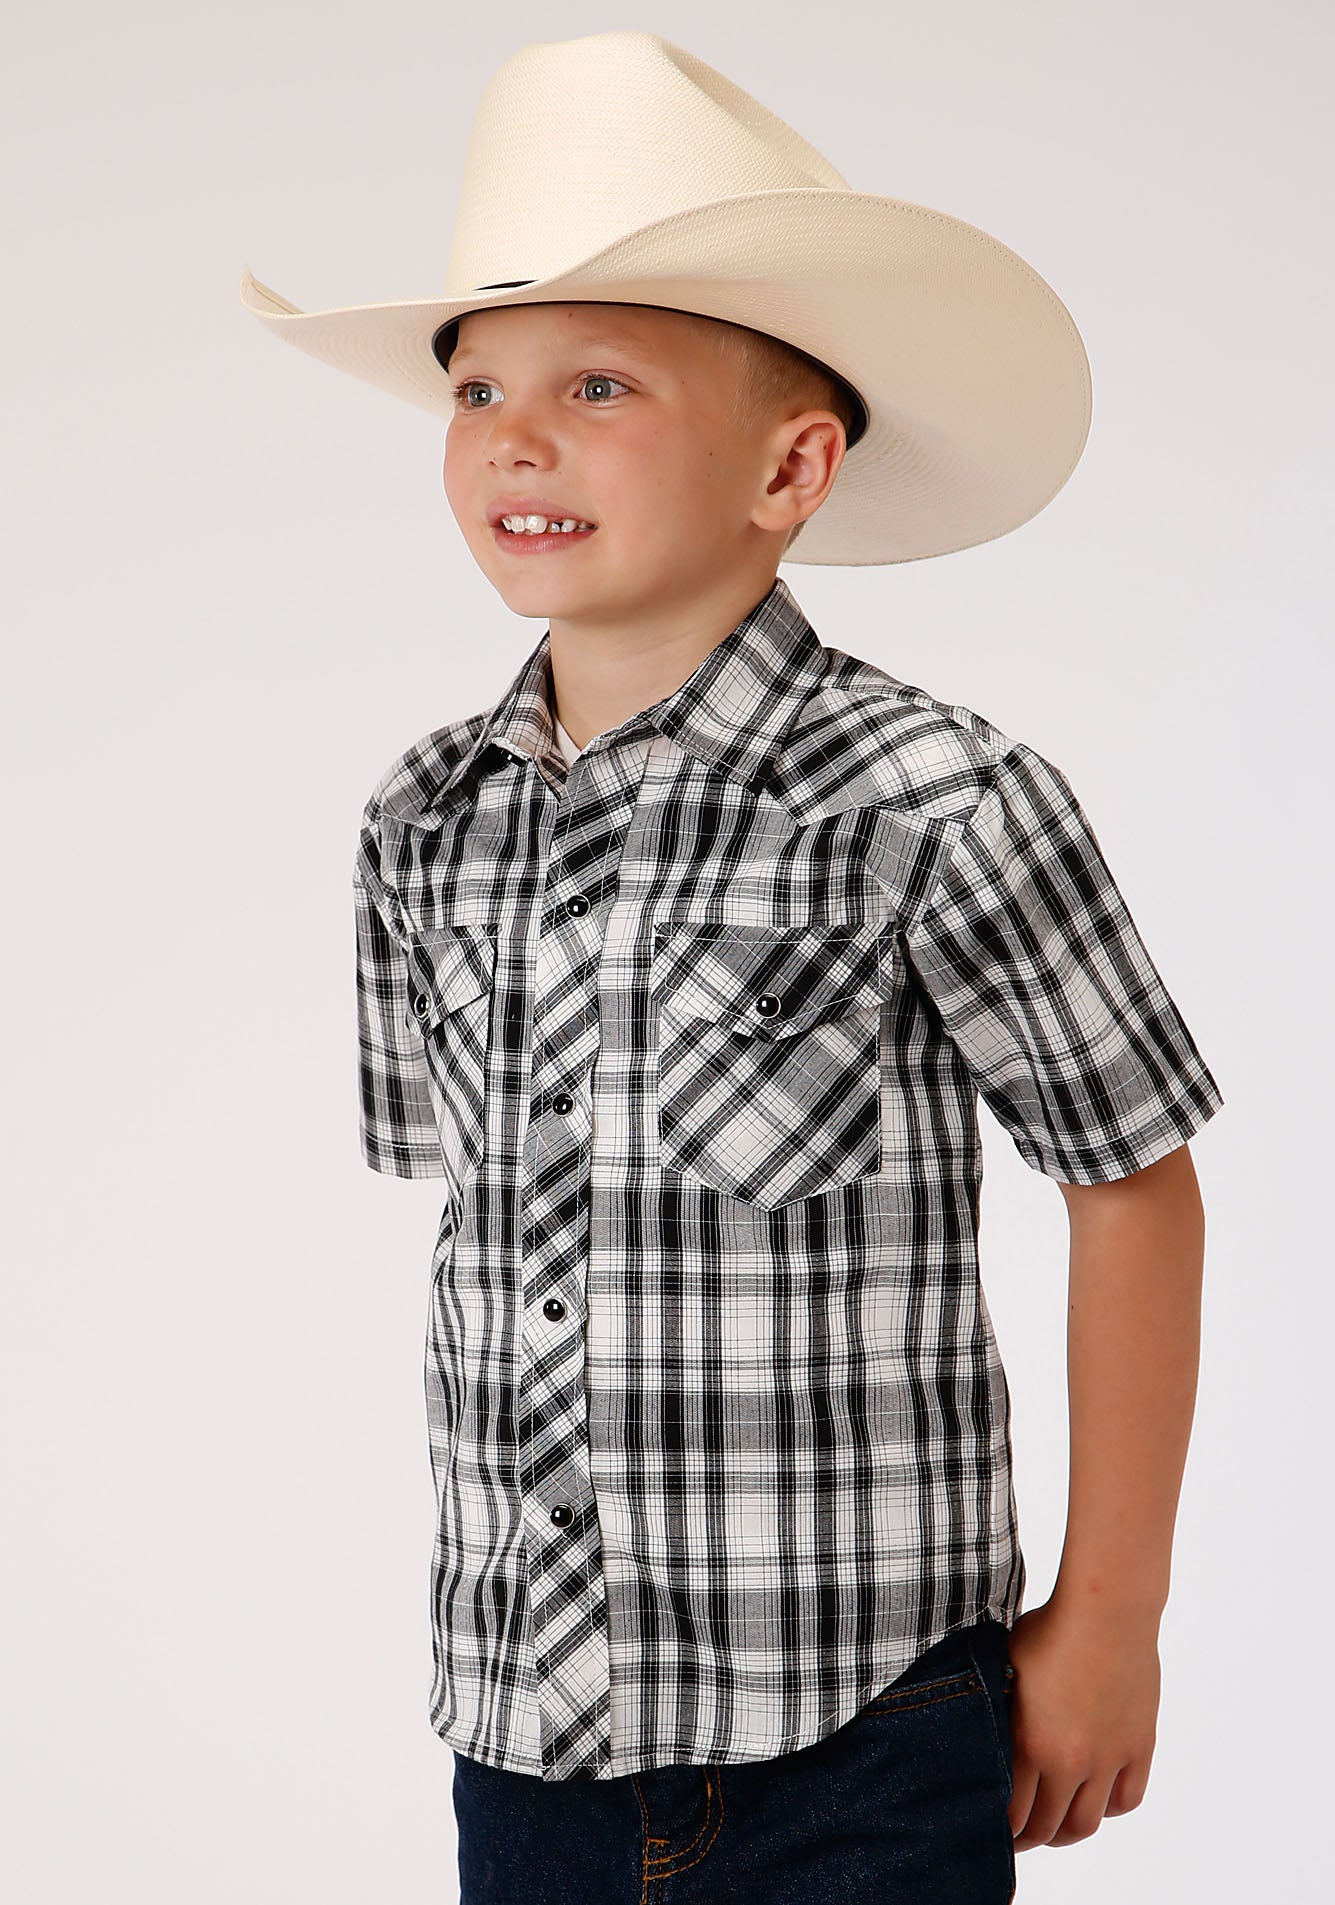 ROPER BOYS BLACK 00042 BLACK & WHITE PLAID KARMAN CLASSICS- 55/45 PLAID SHORT SLEEVE